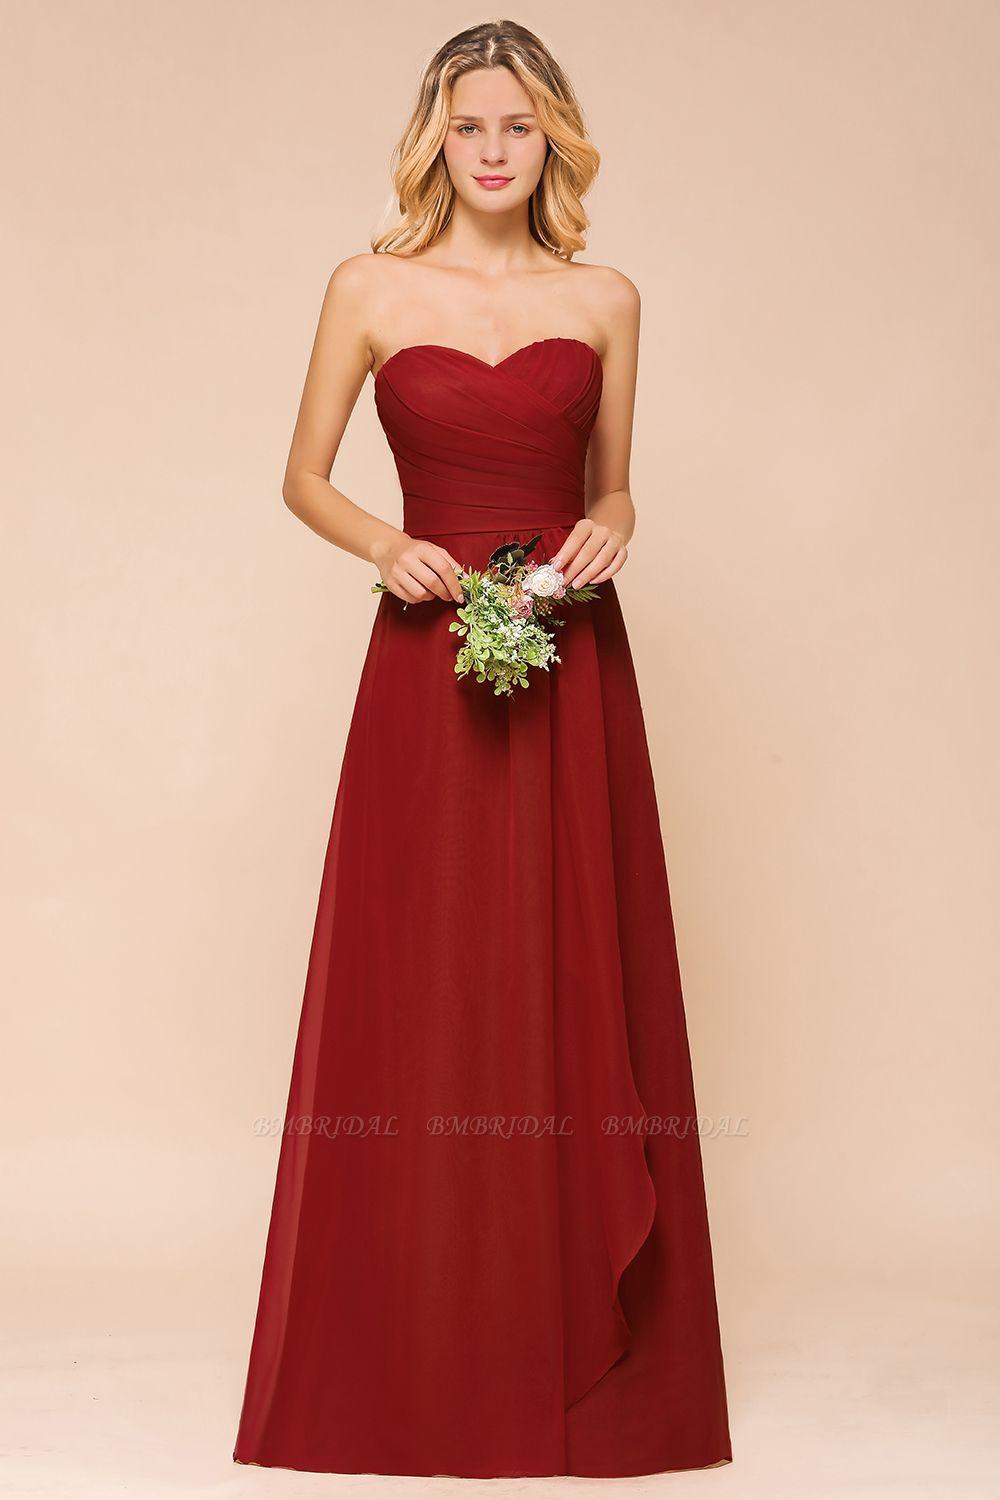 Gorgeous Sweetheart Strapless Rust Bridesmaid Dresses with Ruffle